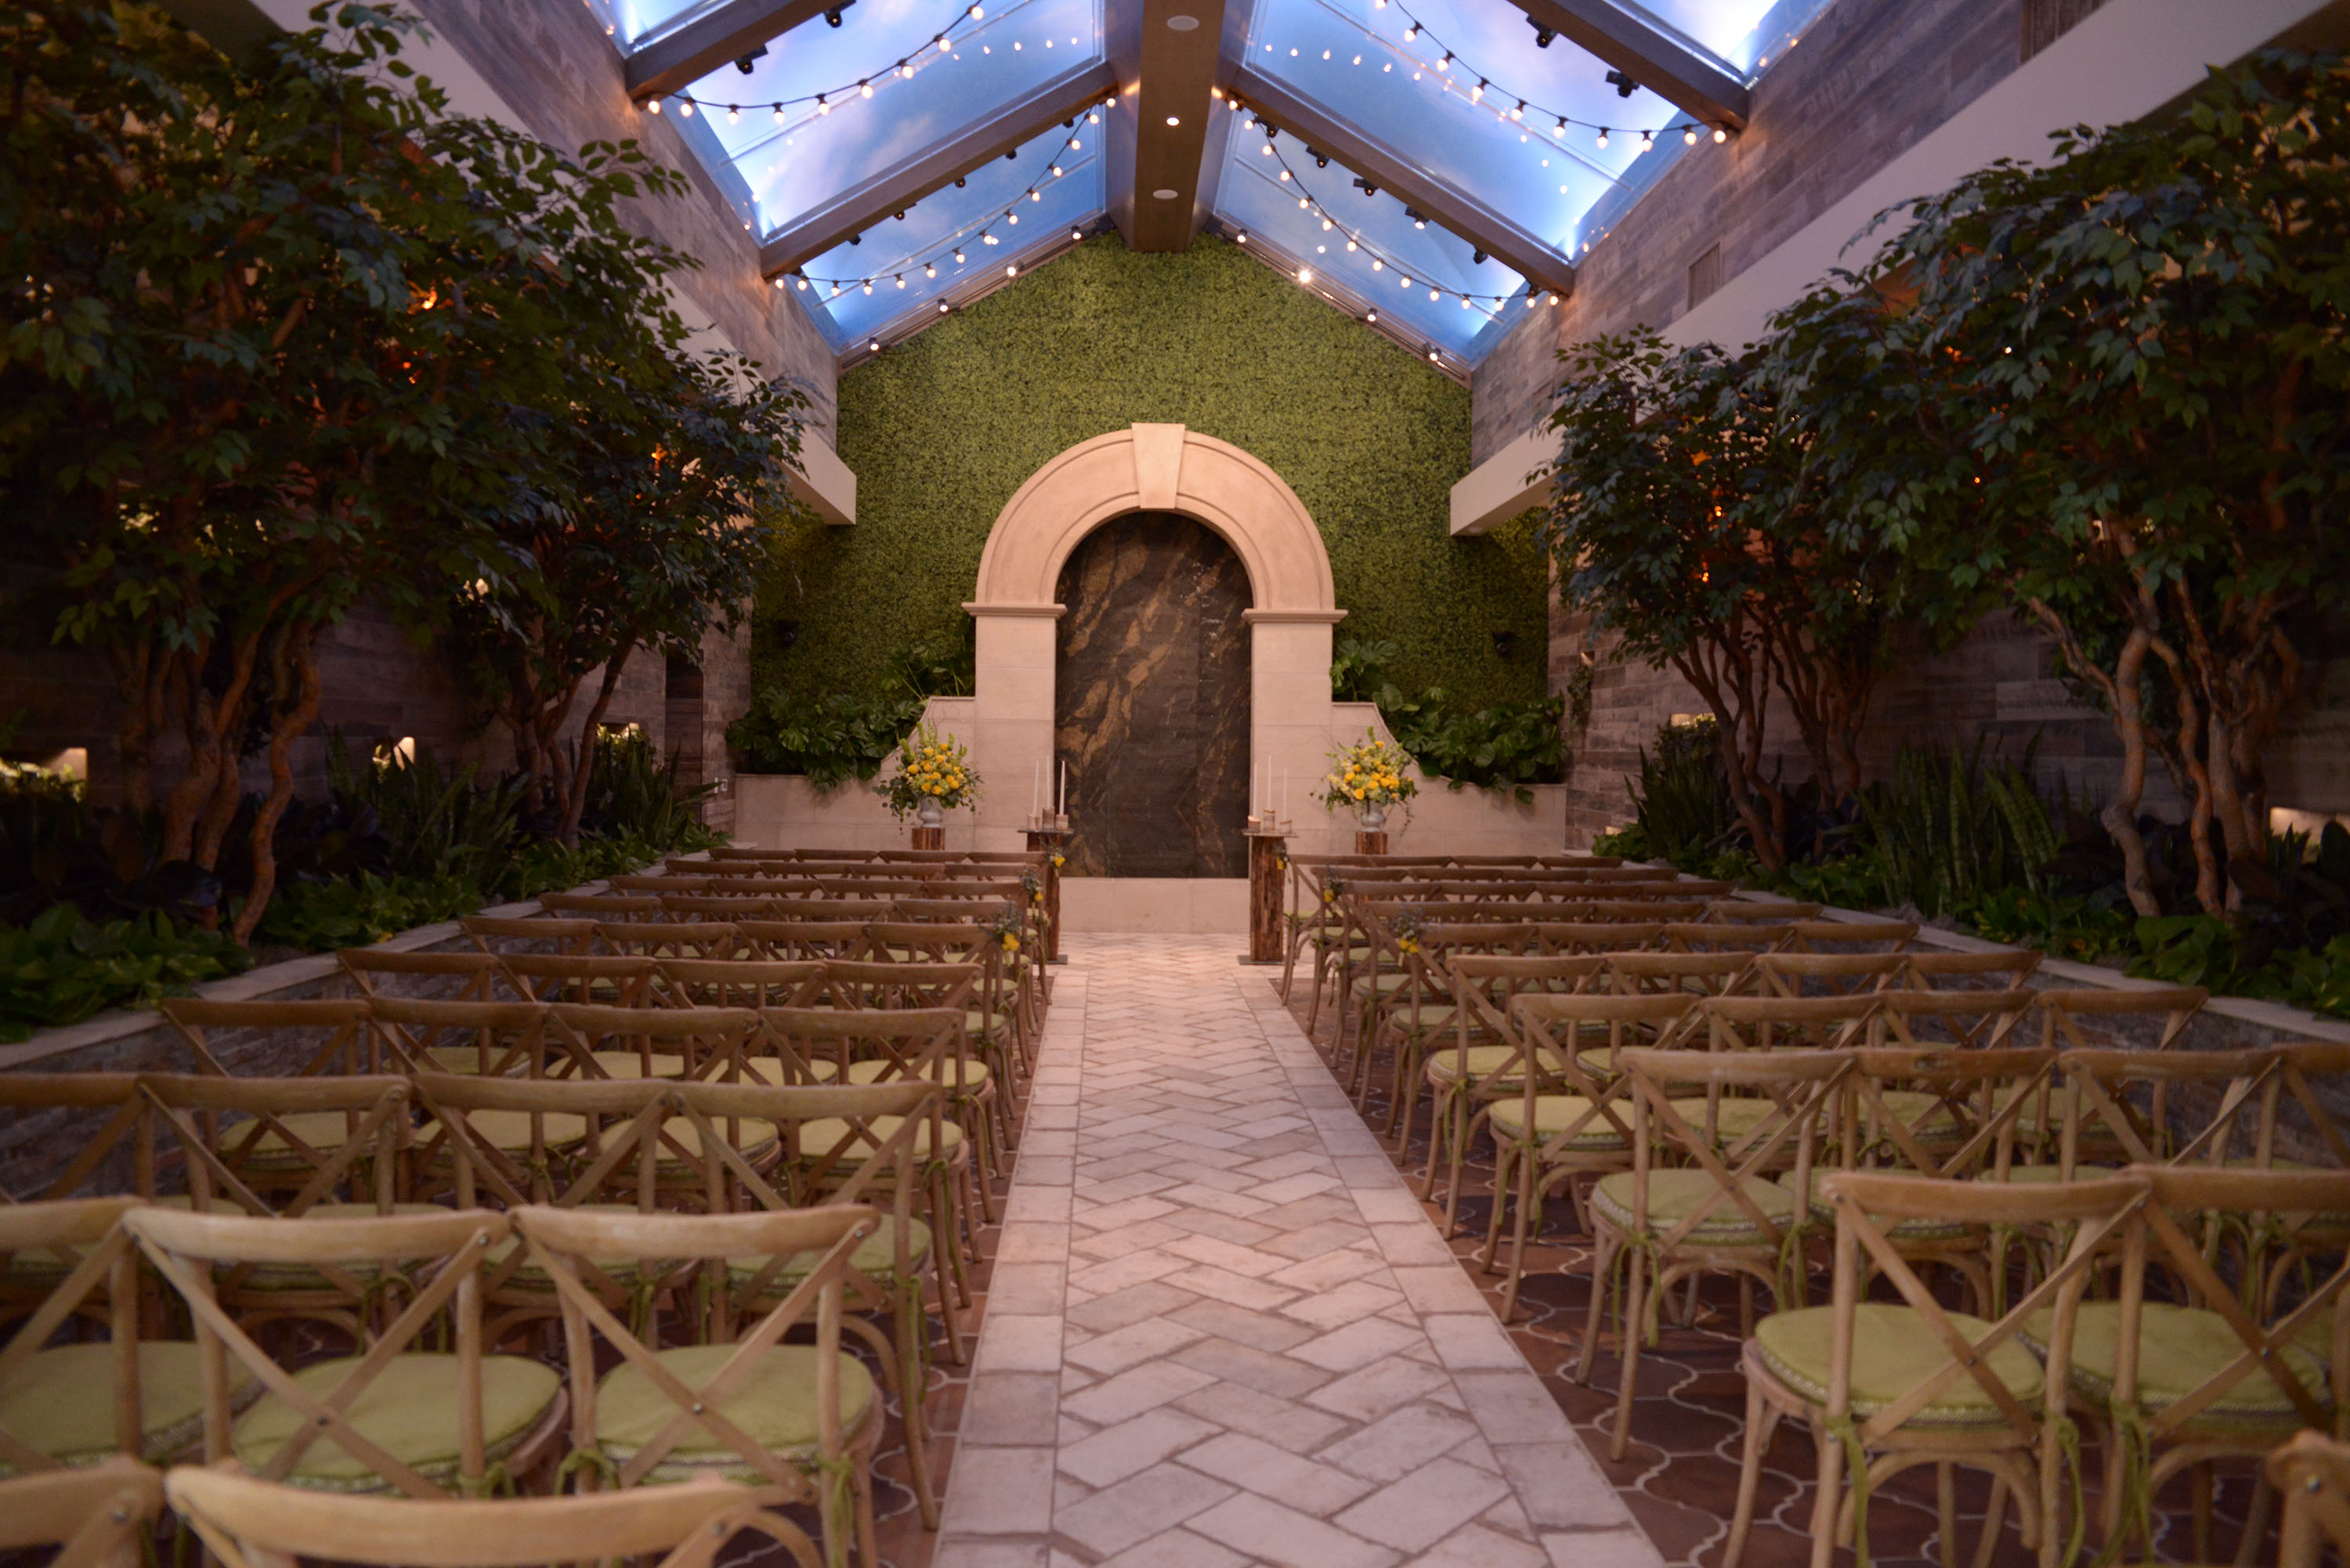 Top 10 Wedding Trends For 2018 Predicted By Chapel Of The Flowers